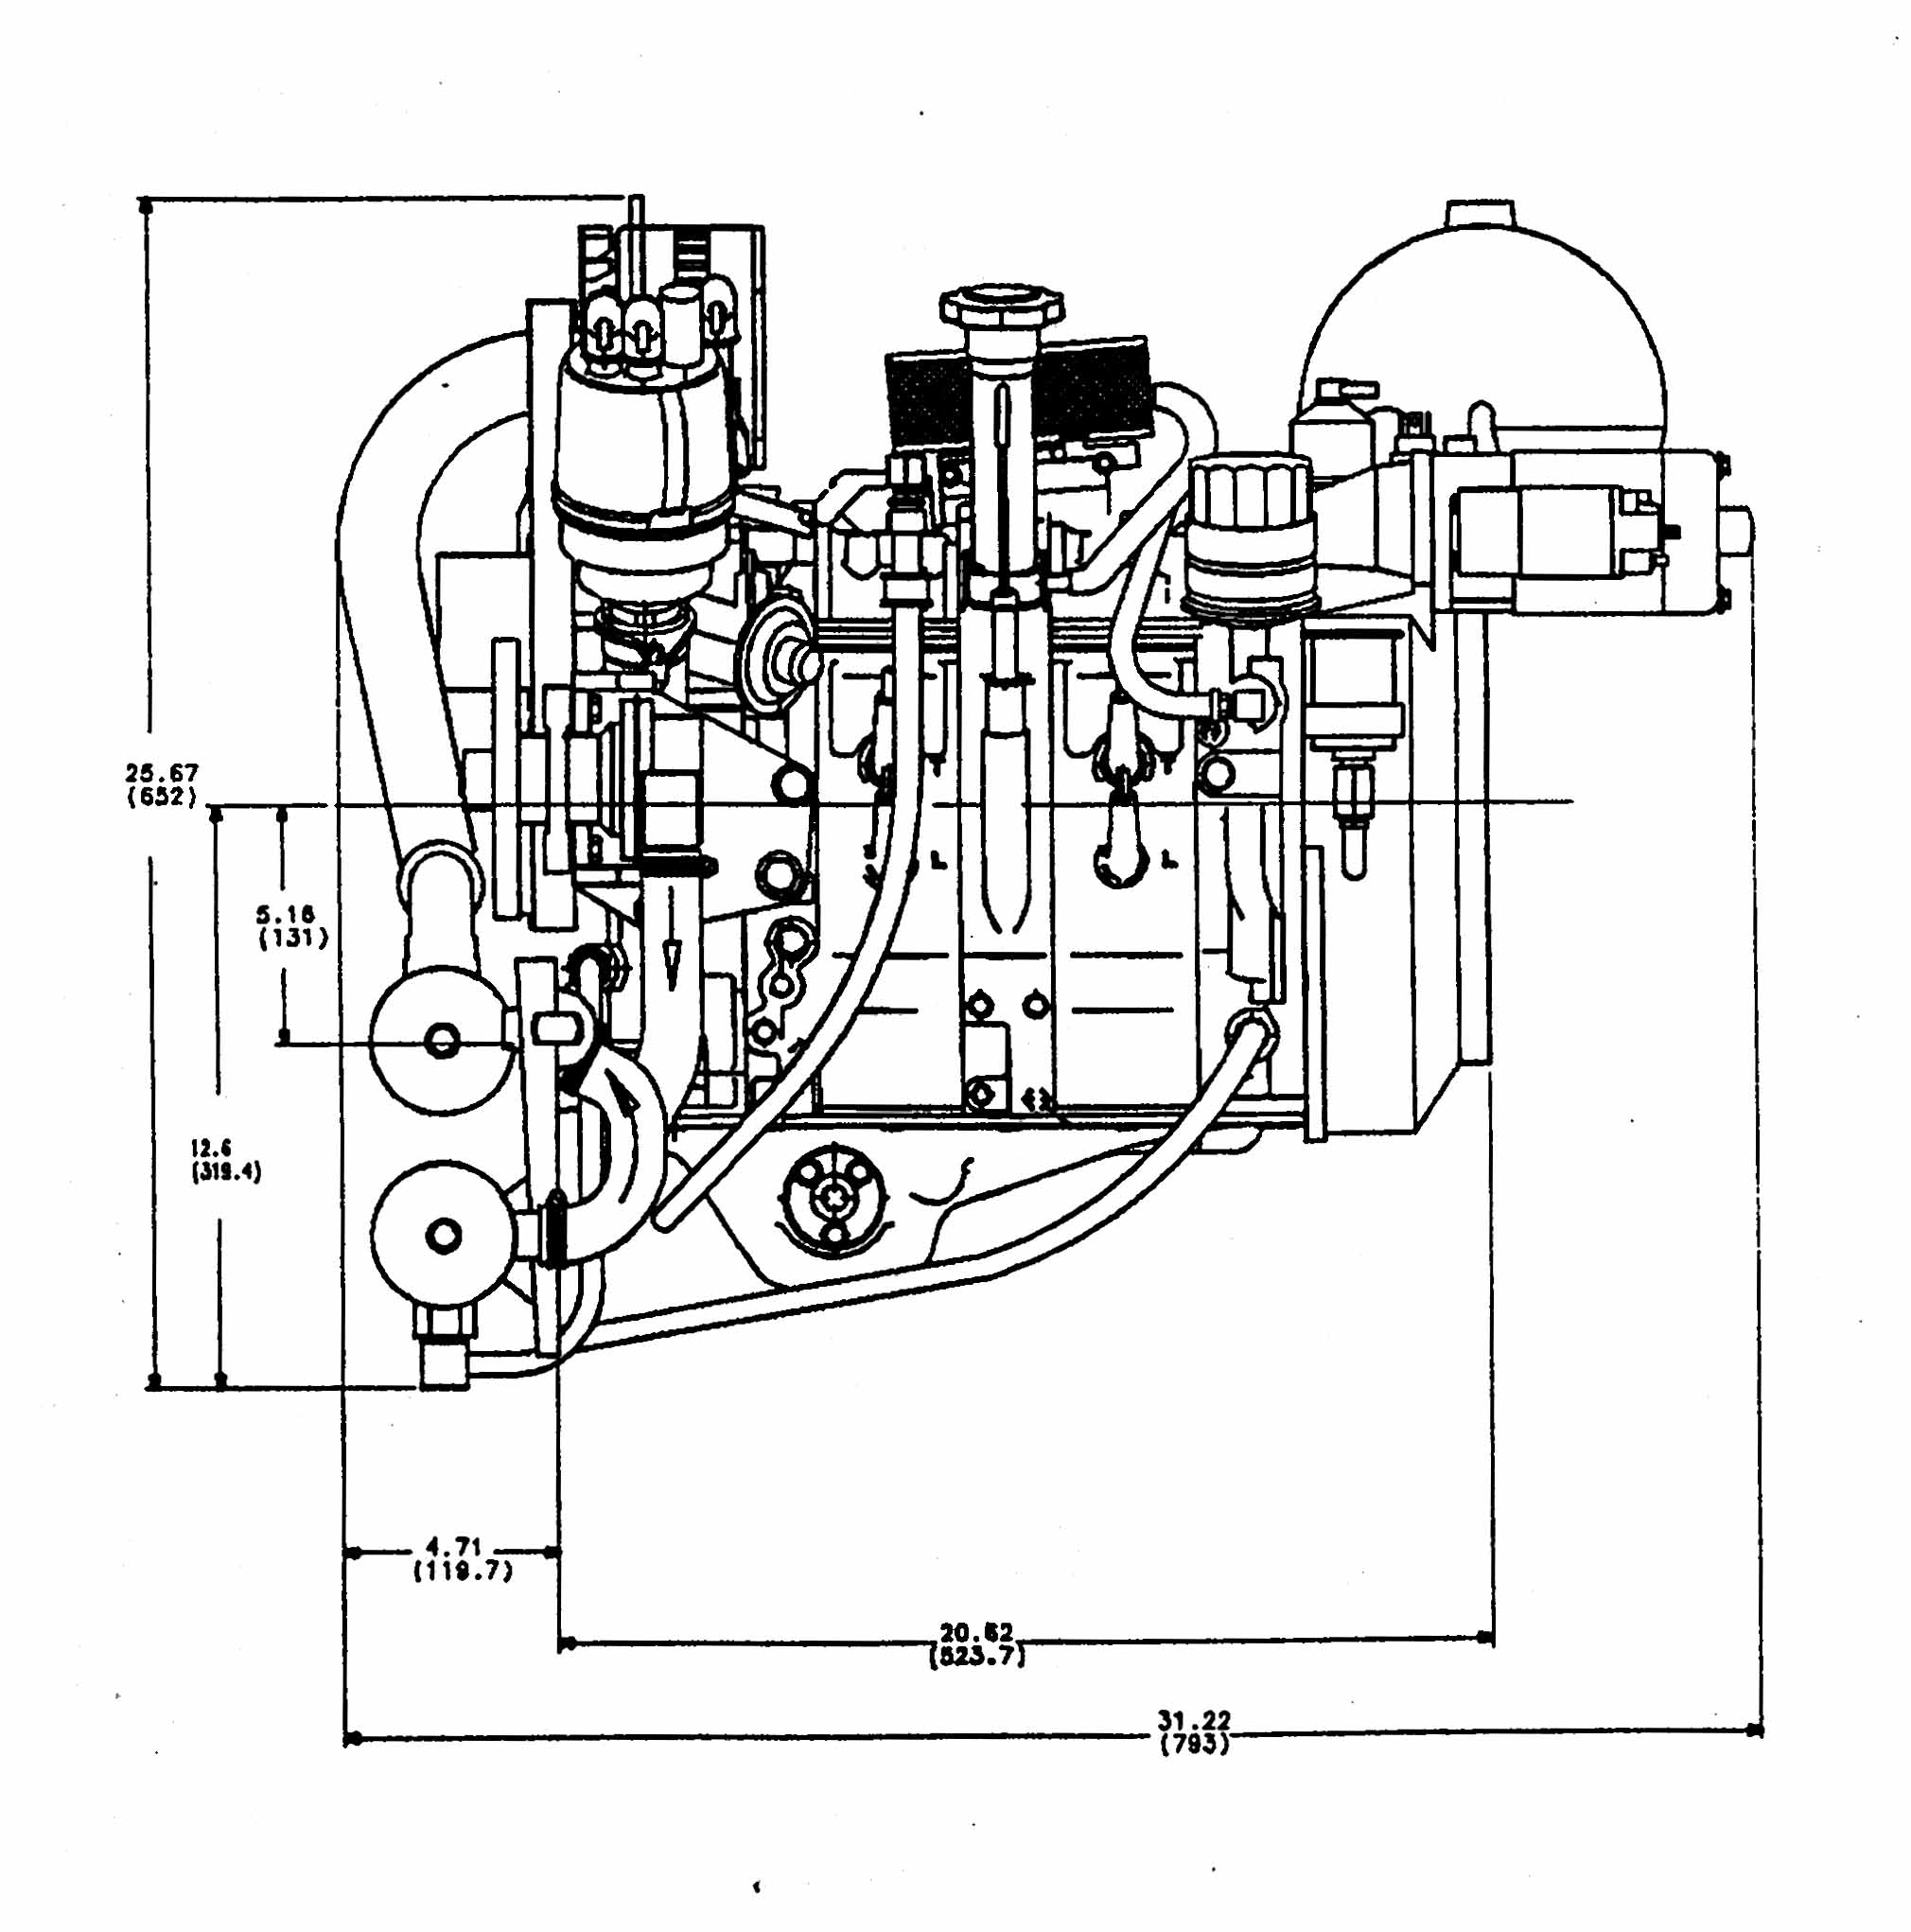 Rotary Engine With A Transaxle